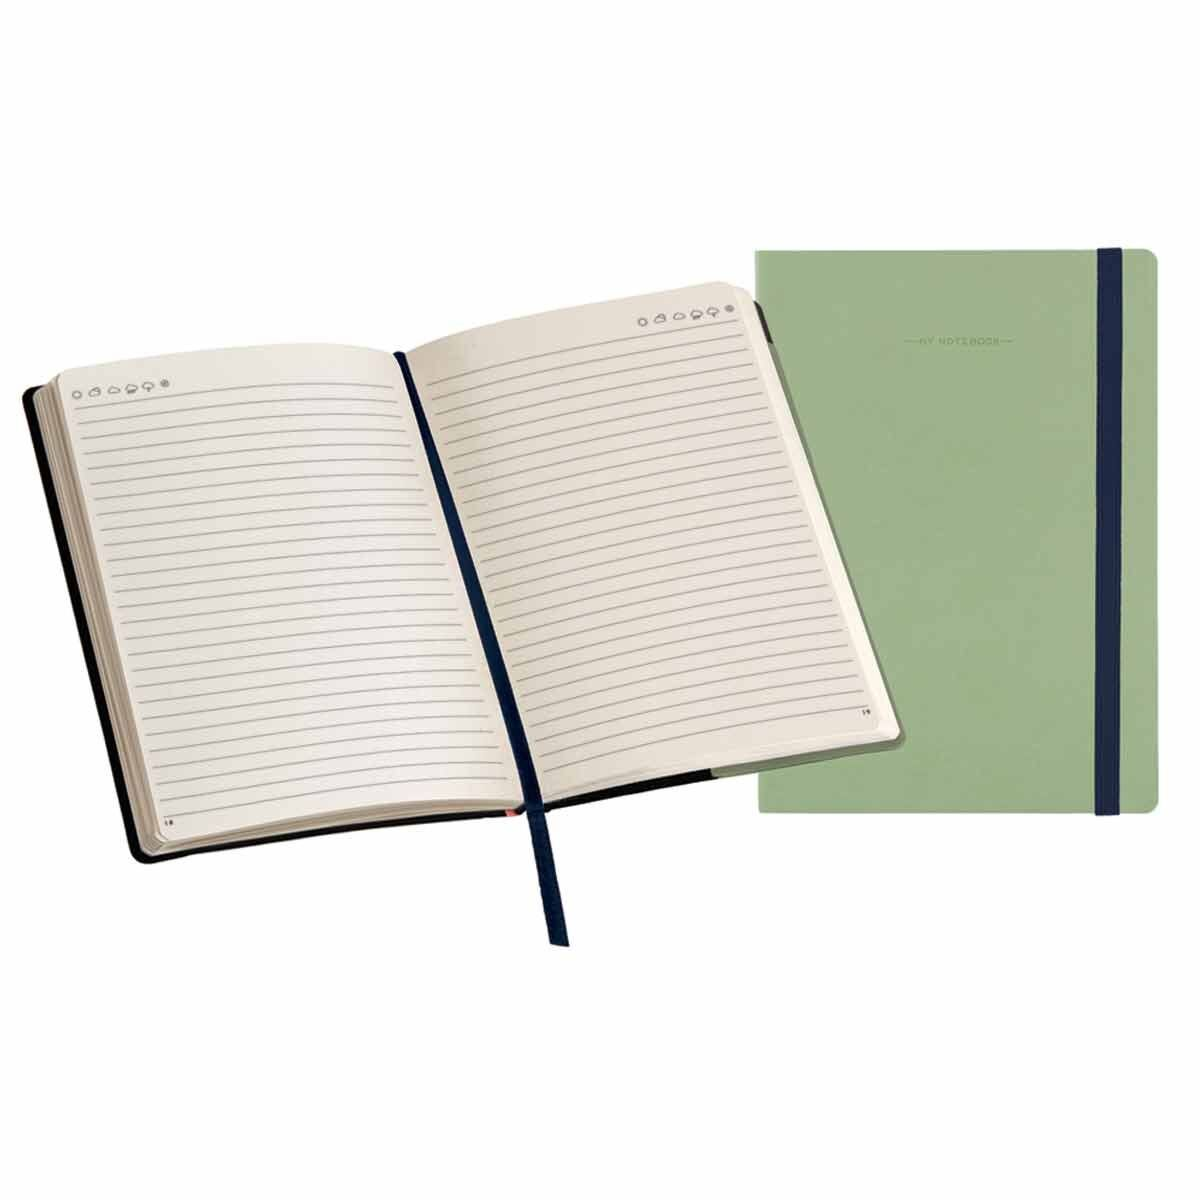 Legami My Notebook Large Lined Green